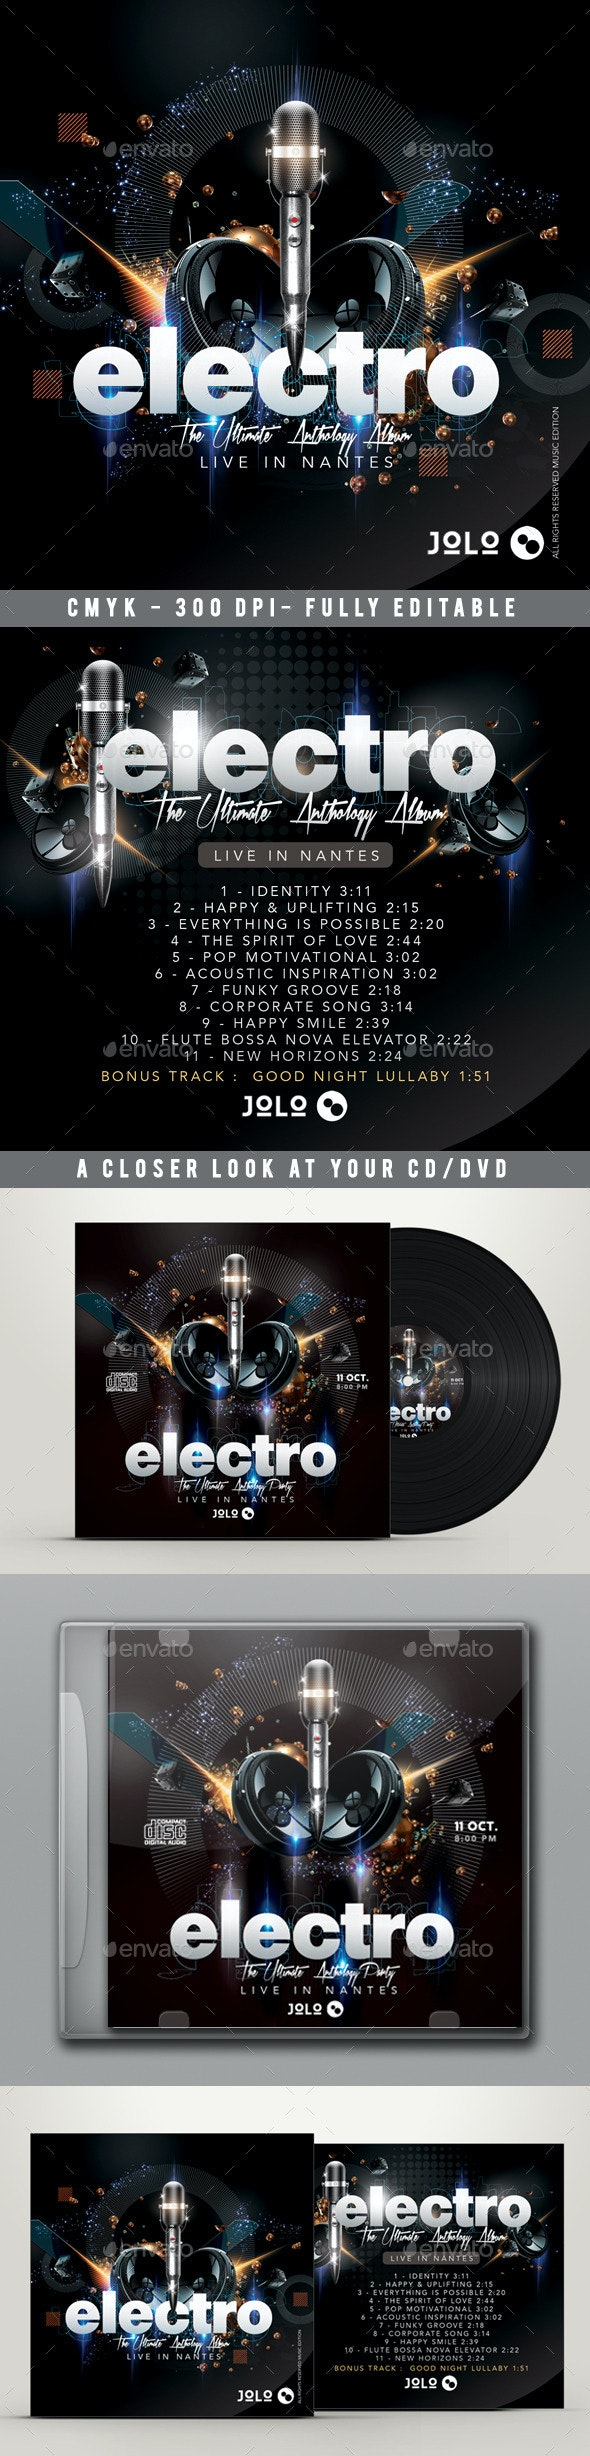 Cd Cover - CD & DVD Artwork Print Templates